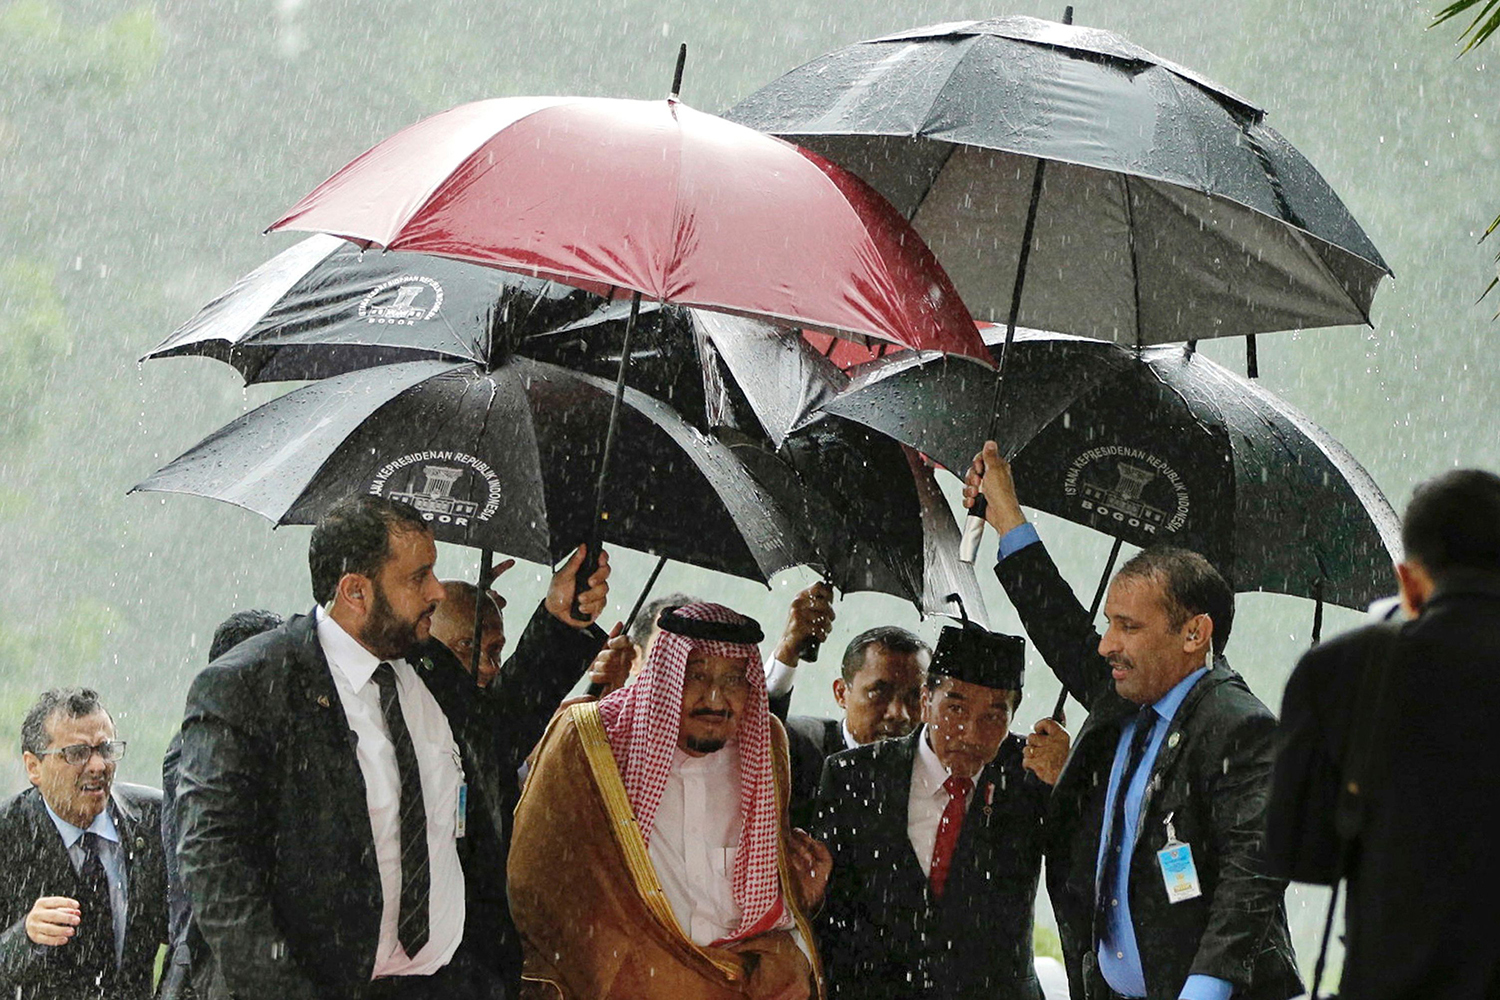 TOPSHOT - Saudi Arabia's King Salman bin Abdul Aziz (centre L) and Indonesia's President Joko Widodo (centre R) walk in heavy rain at the presidential palace in Bogor, West Java on March 1, 2017. Cheering crowds welcomed King Salman on March 1 as he began the first visit by a Saudi monarch to Indonesia for almost 50 years, seeking stronger economic ties with the world's most populous Muslim-majority country. / AFP PHOTO / POOL / Achmad Ibrahim / TT / kod 444